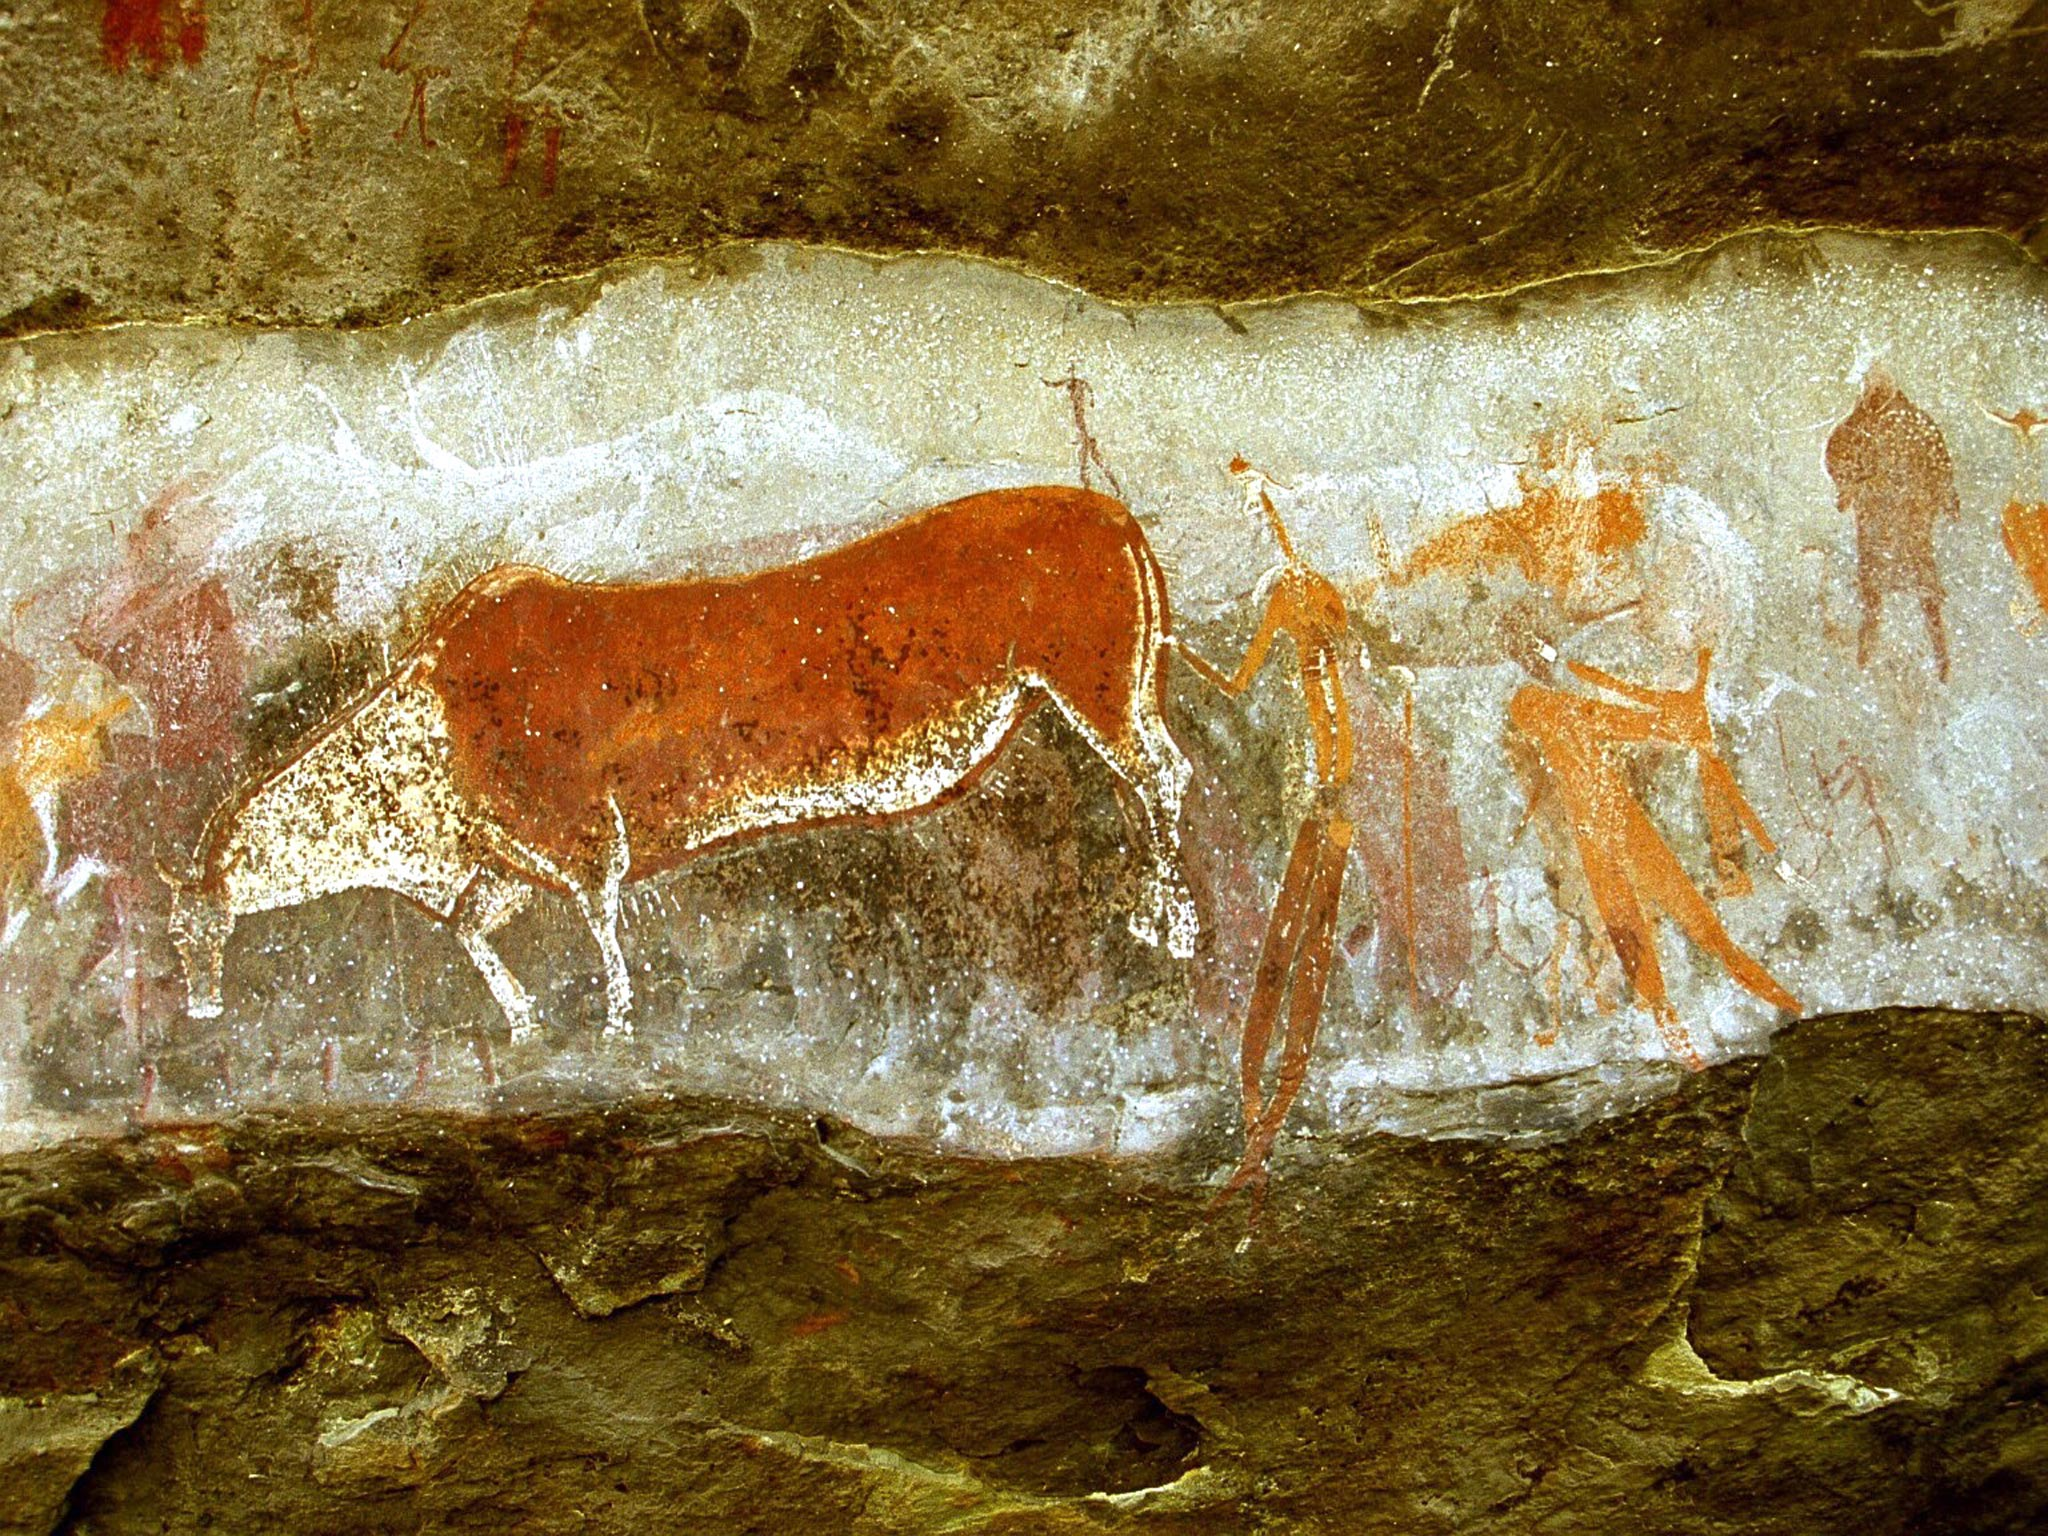 Bushman rock art at Kamberg at Game Pass Shelter